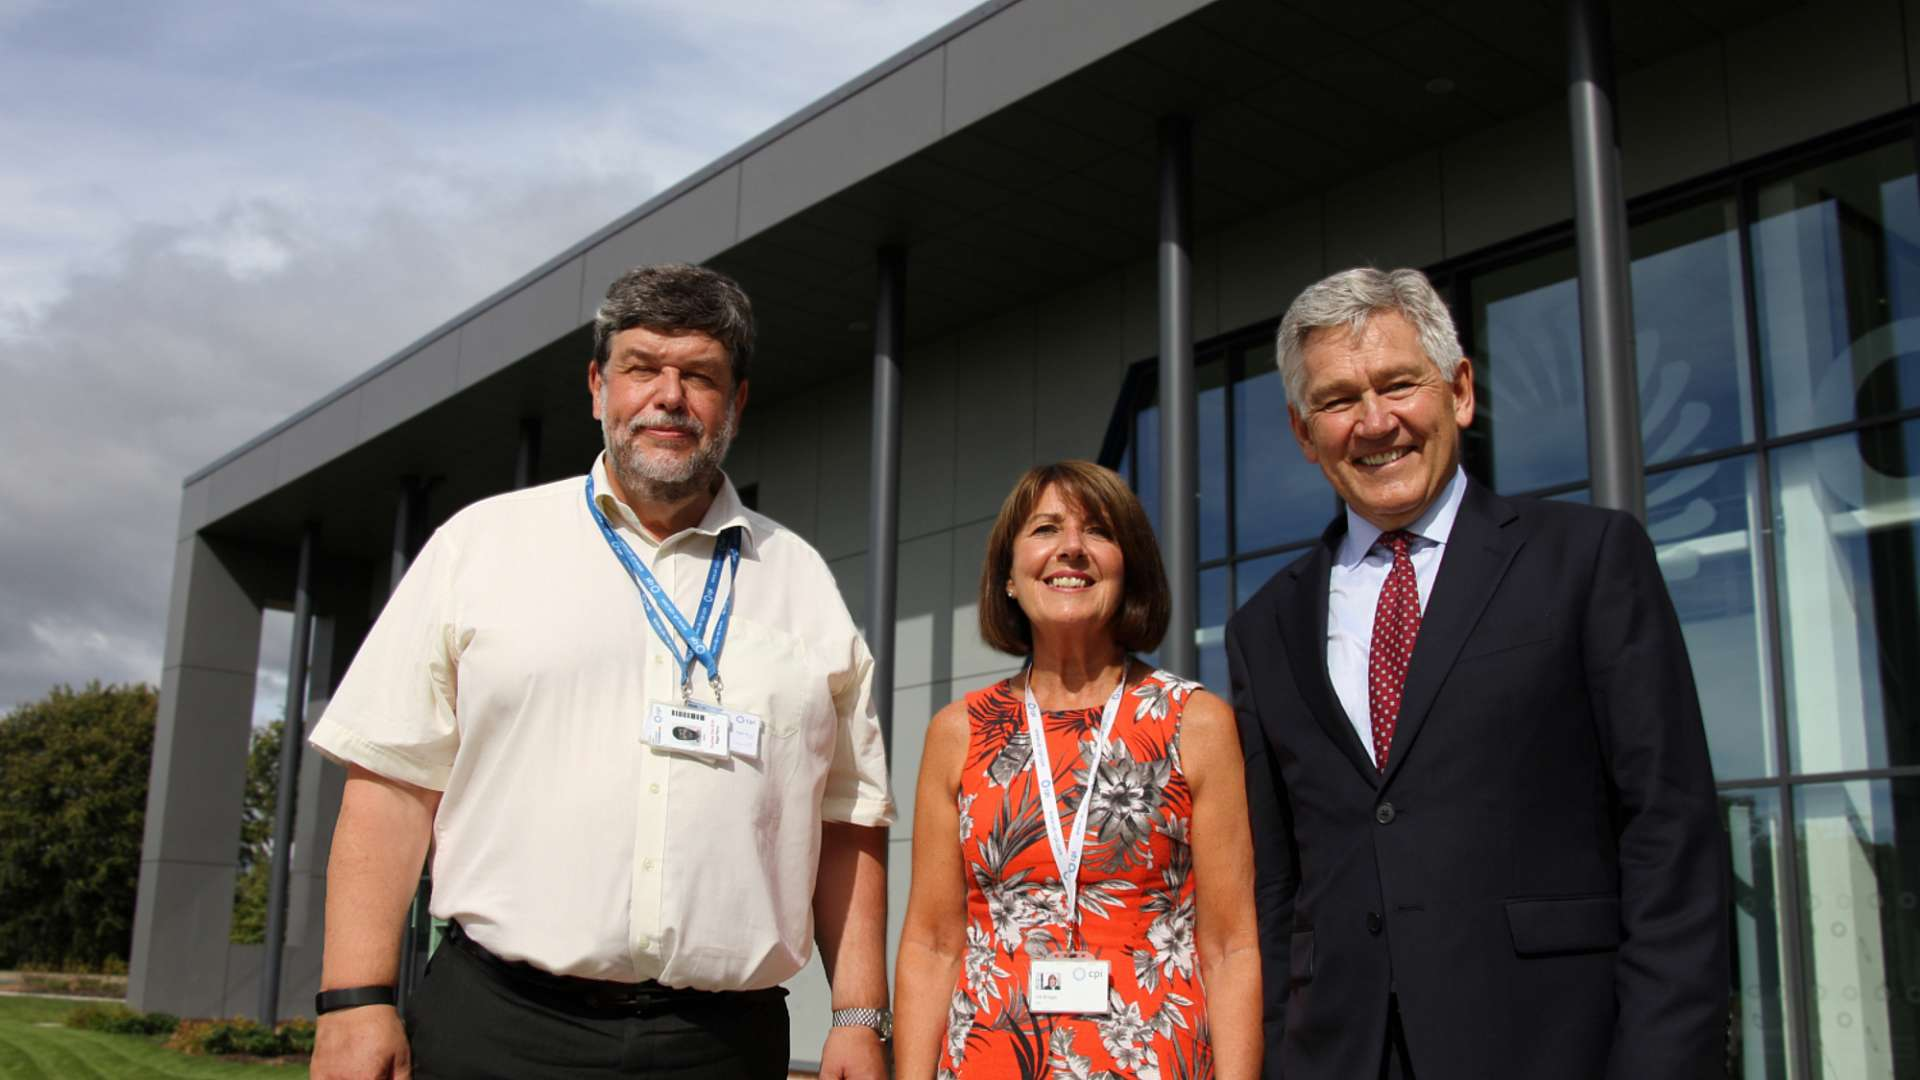 Bob Coxon, right, with CPI CEO Nigel Perry, and PA and Office Manager Val Briggs